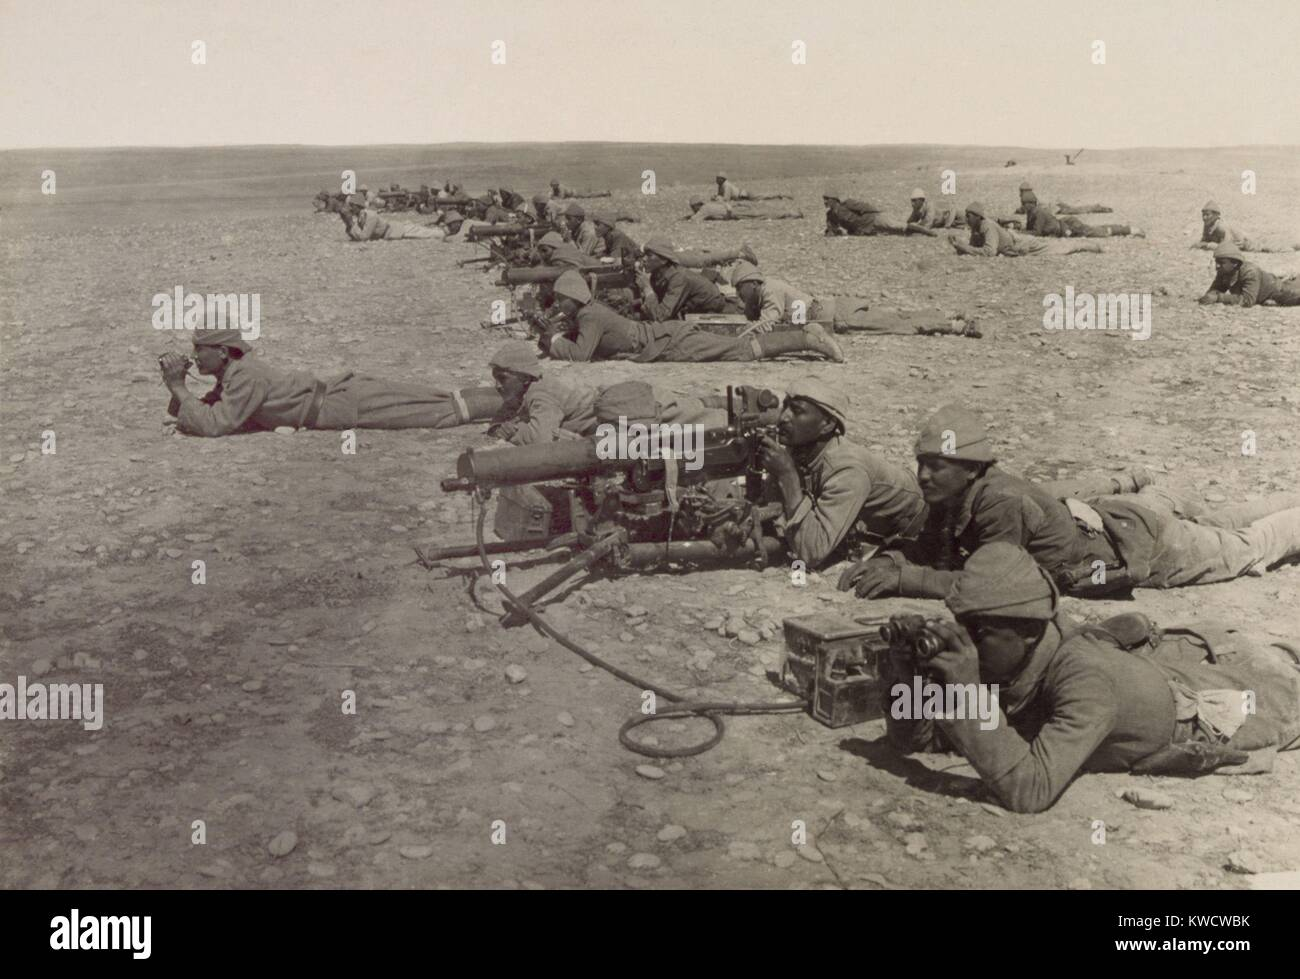 World War 1 in the Middle East. Turkish machine gun corps at Tell el Sheria on the Ottoman defensive Gaza-Beersheba - Stock Image